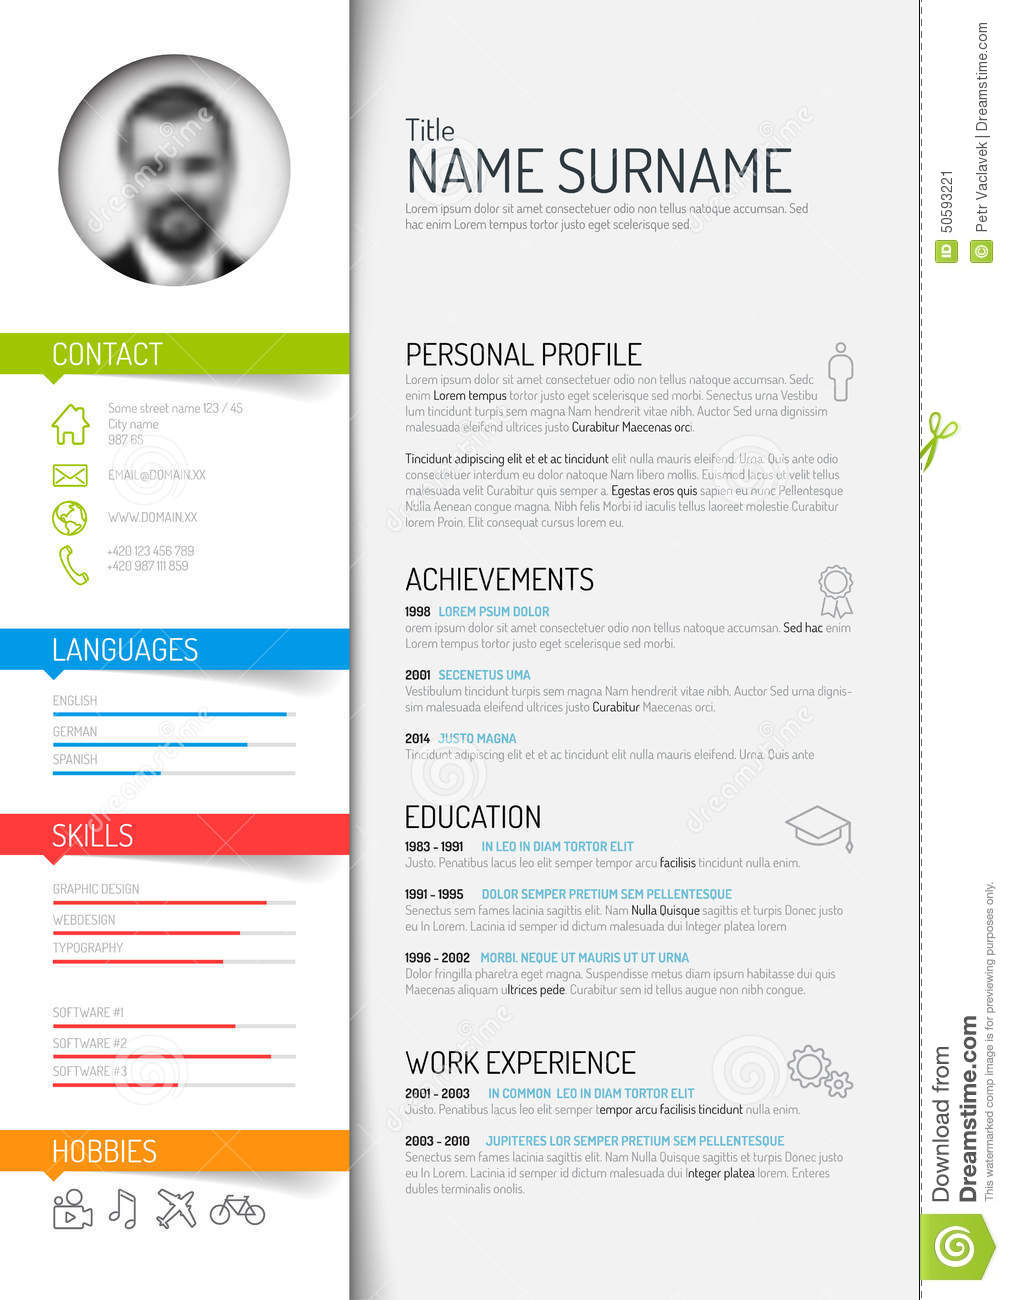 Cv Resume Template Stock Vector Image 50593221